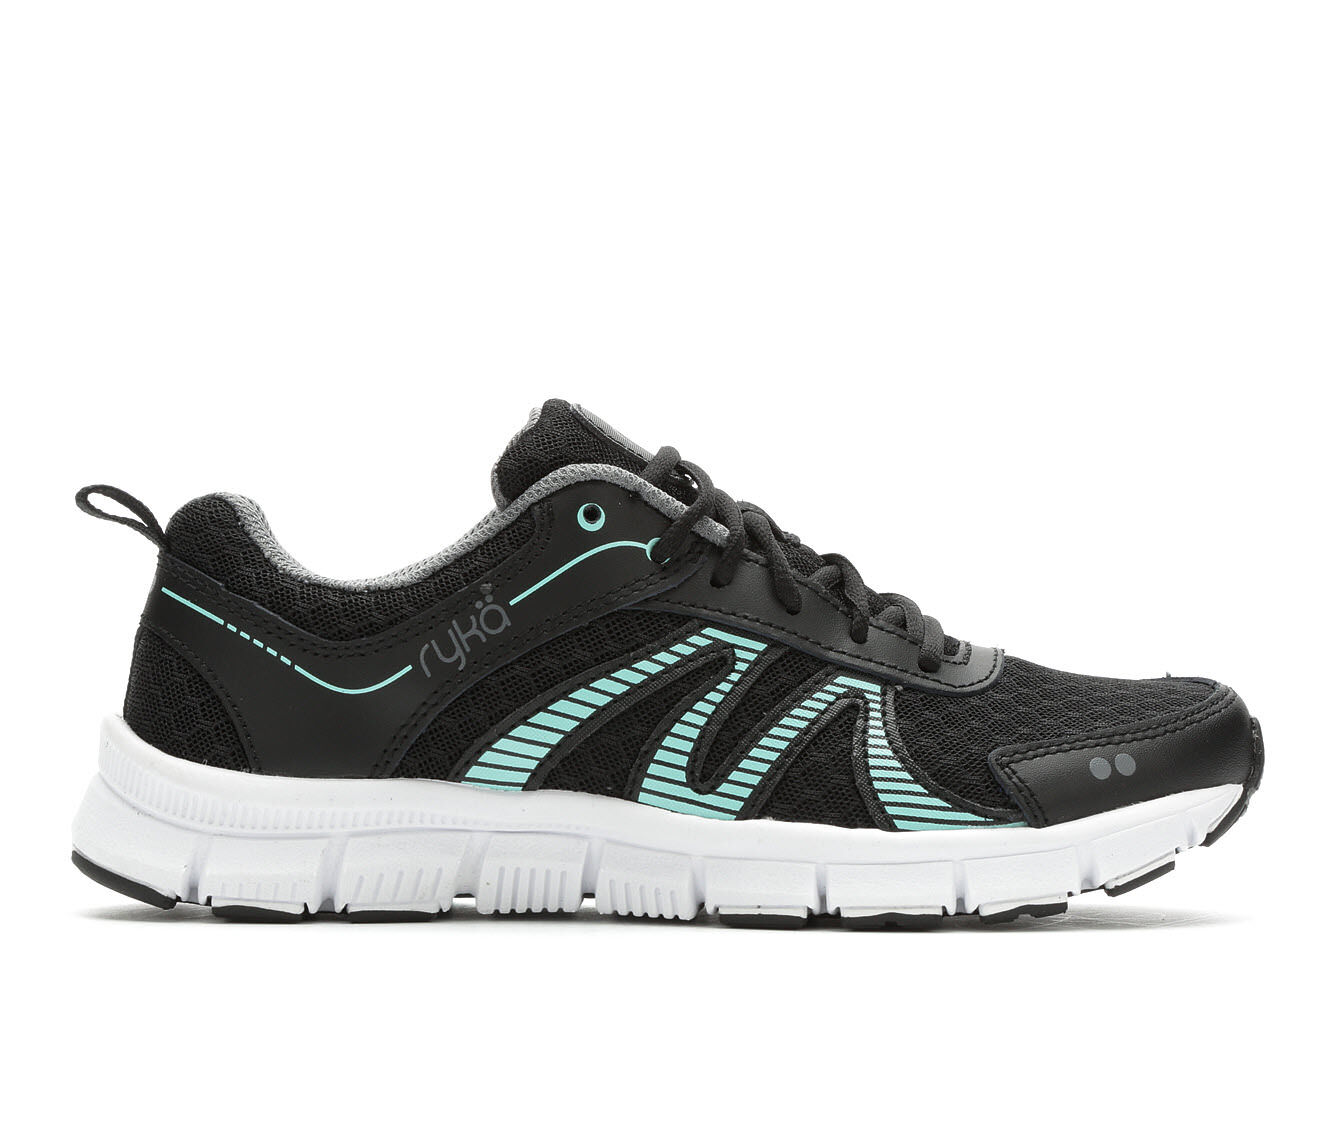 Superior Quality Women's Ryka Heather Training Shoes Black/Mint